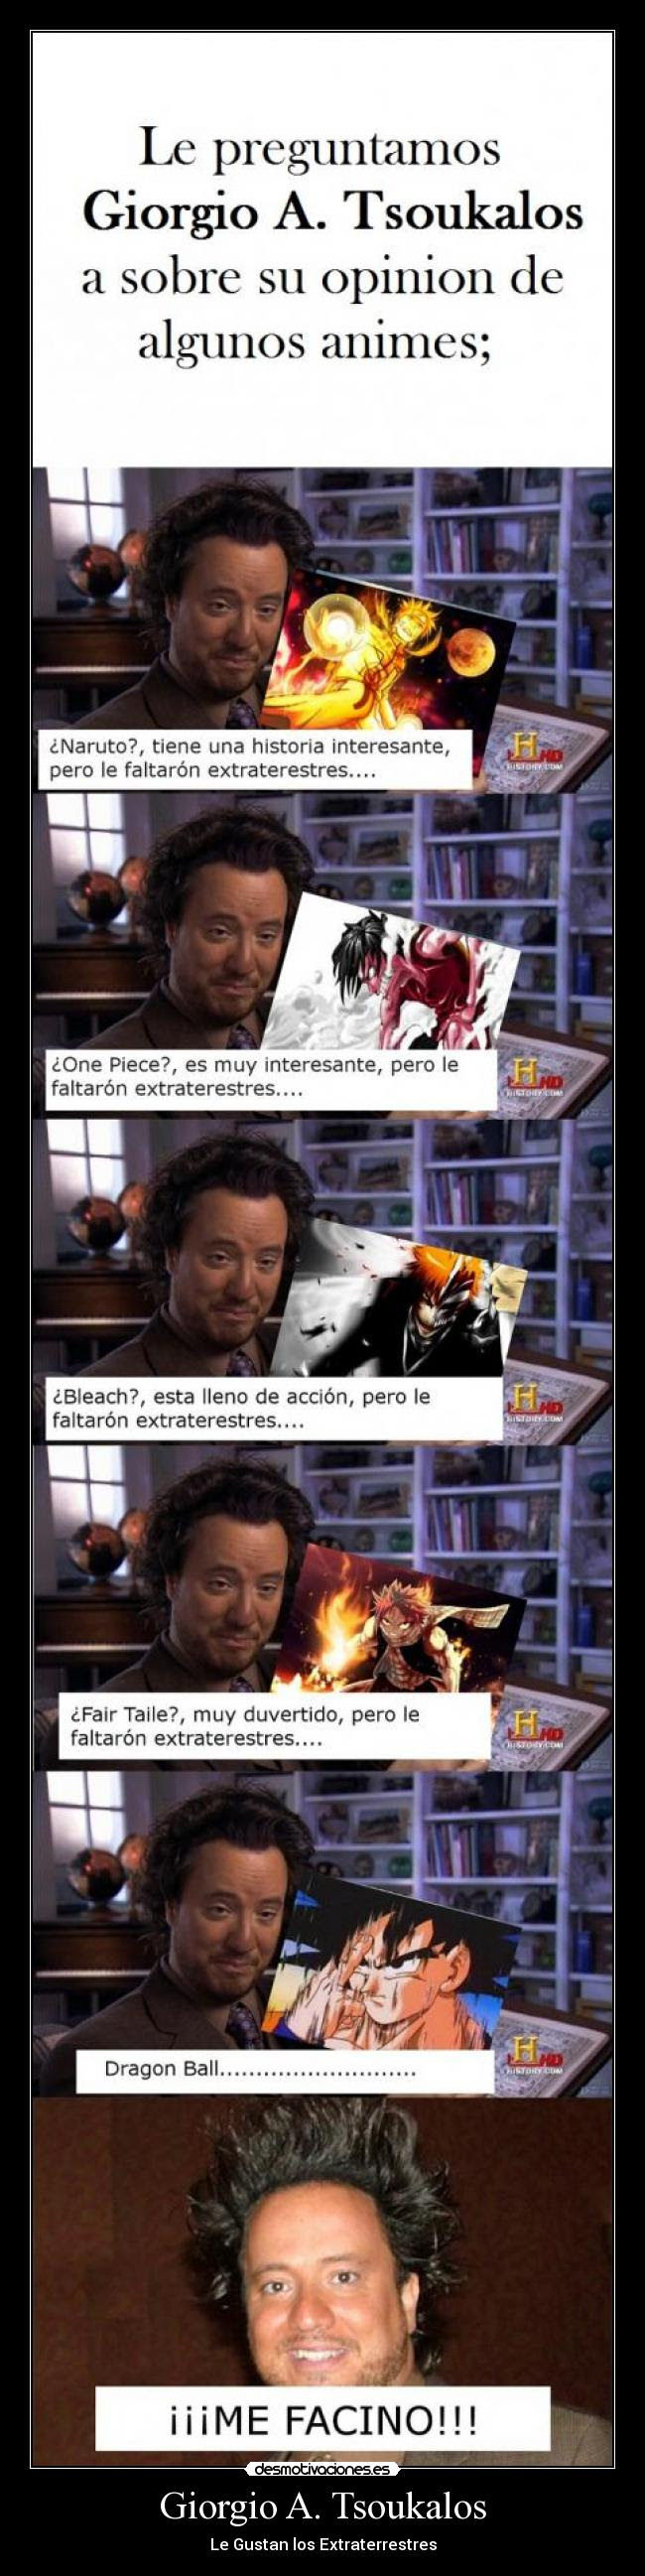 giorgio tsoukalos anime dragon ball goku naruto one piece bleach ichigo fair taile natsu ovni extr